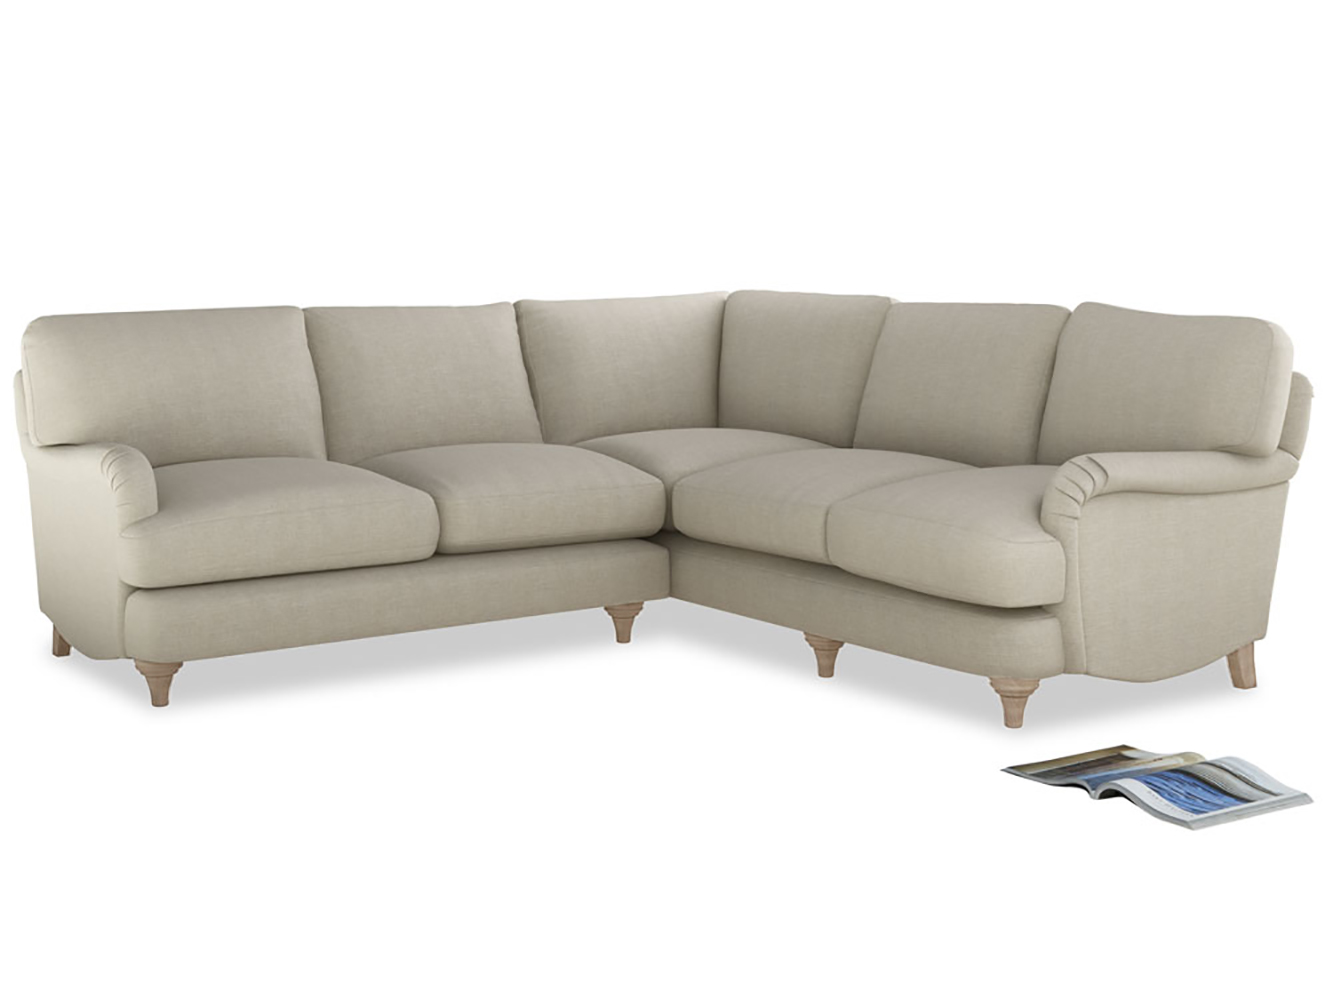 Jonesy Corner Sofa